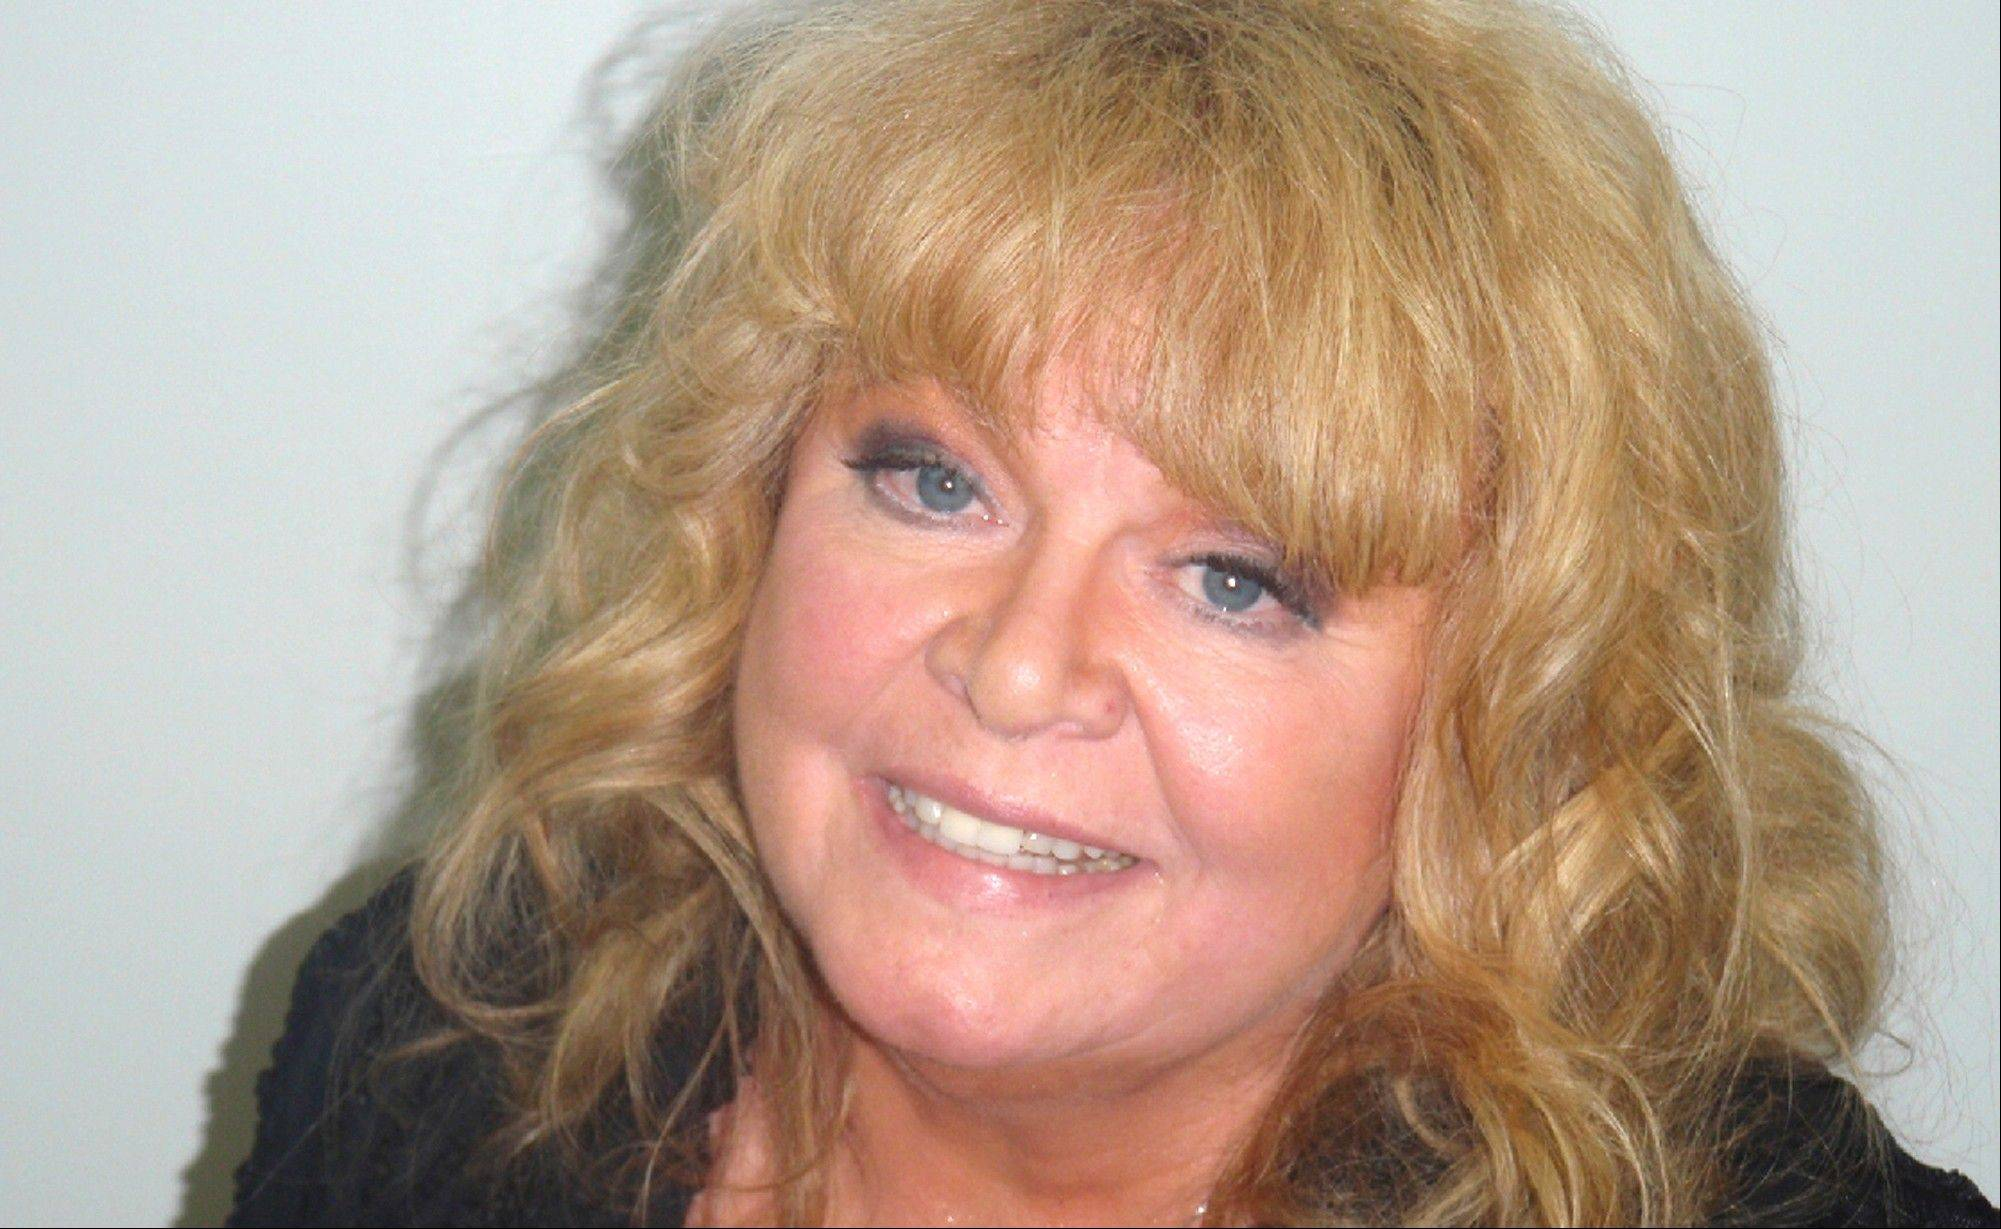 Actress Sally Struthers was arrested early Wednesday on charges of drunken driving after being pulled over on U.S. Route 1 in southern Maine.